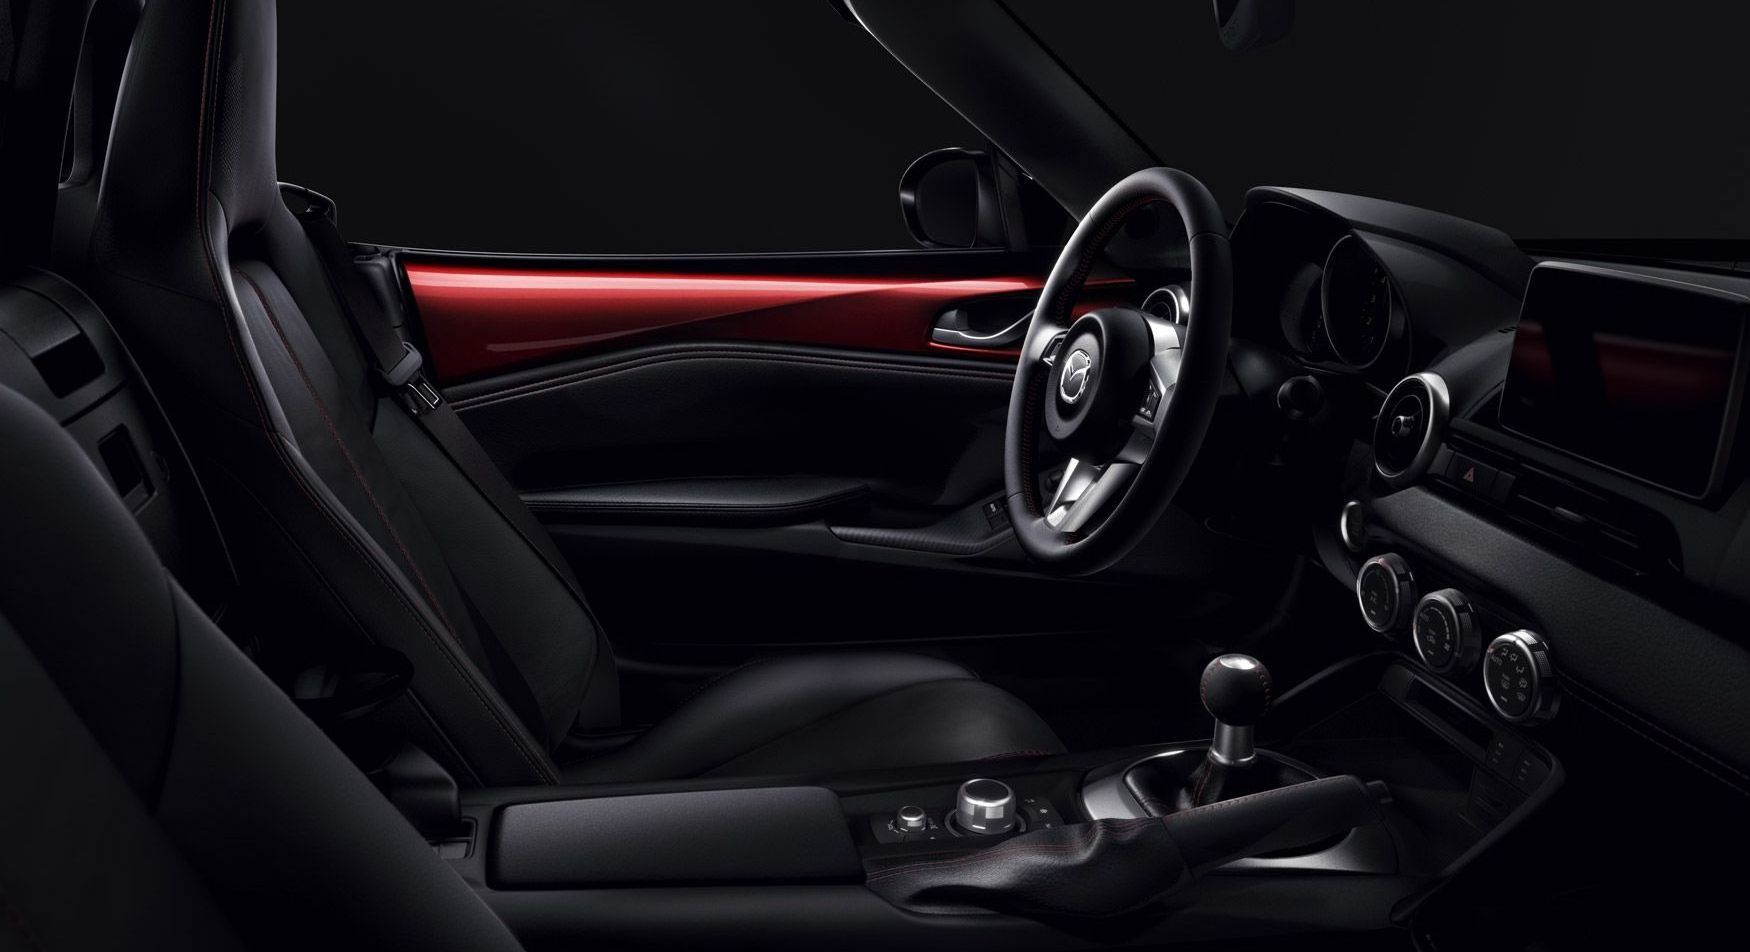 Interior of the Mazda MX-5 Miata RF